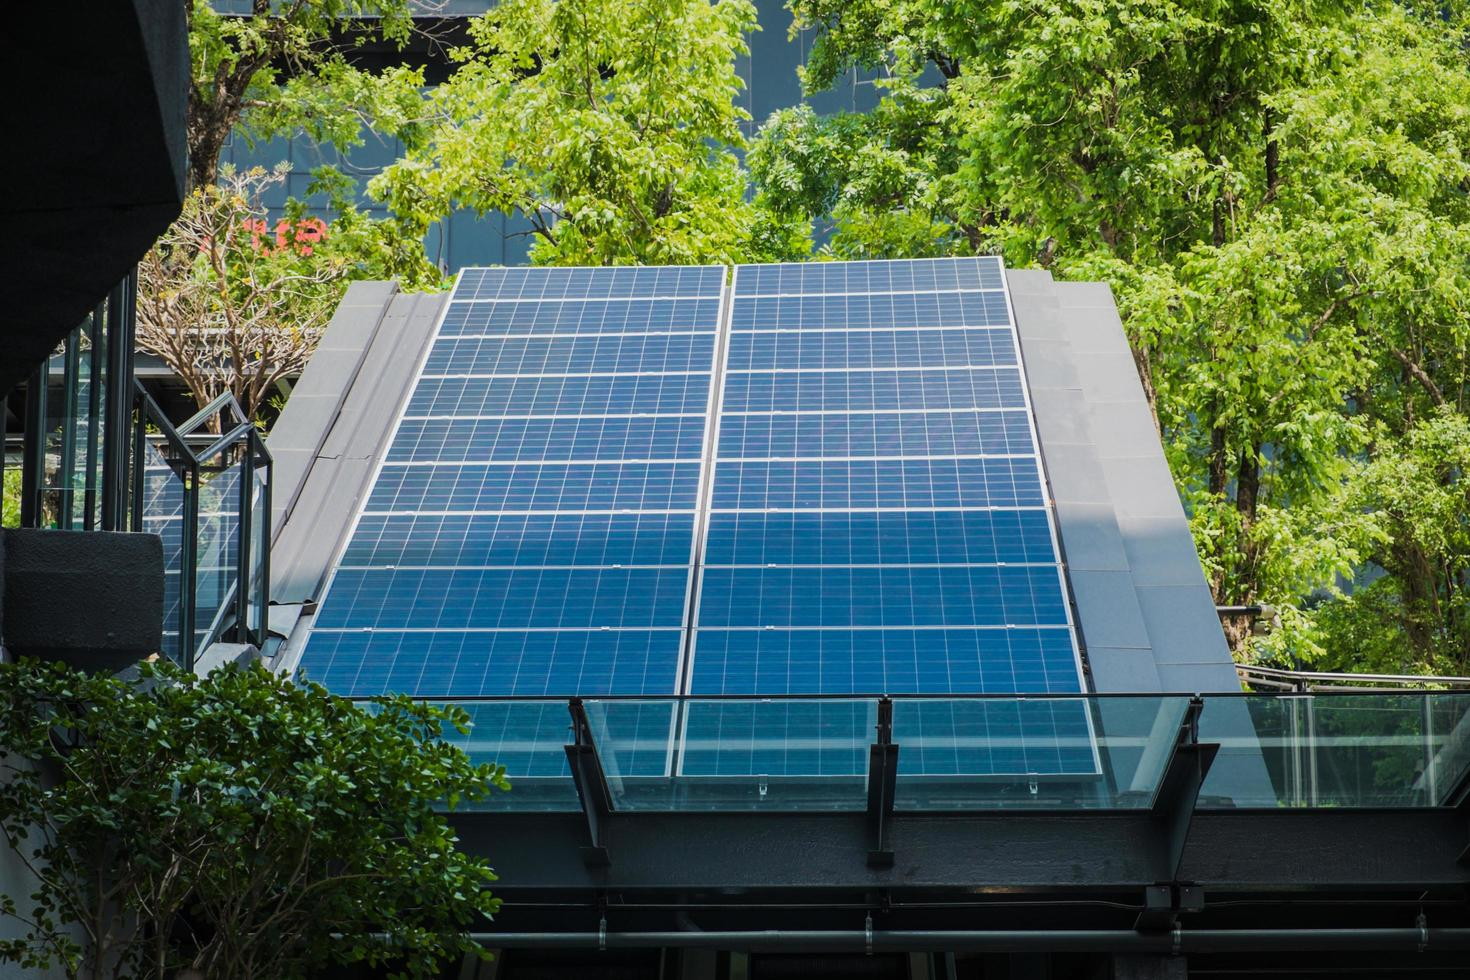 Solar power panels installed on modern rooftop  photo